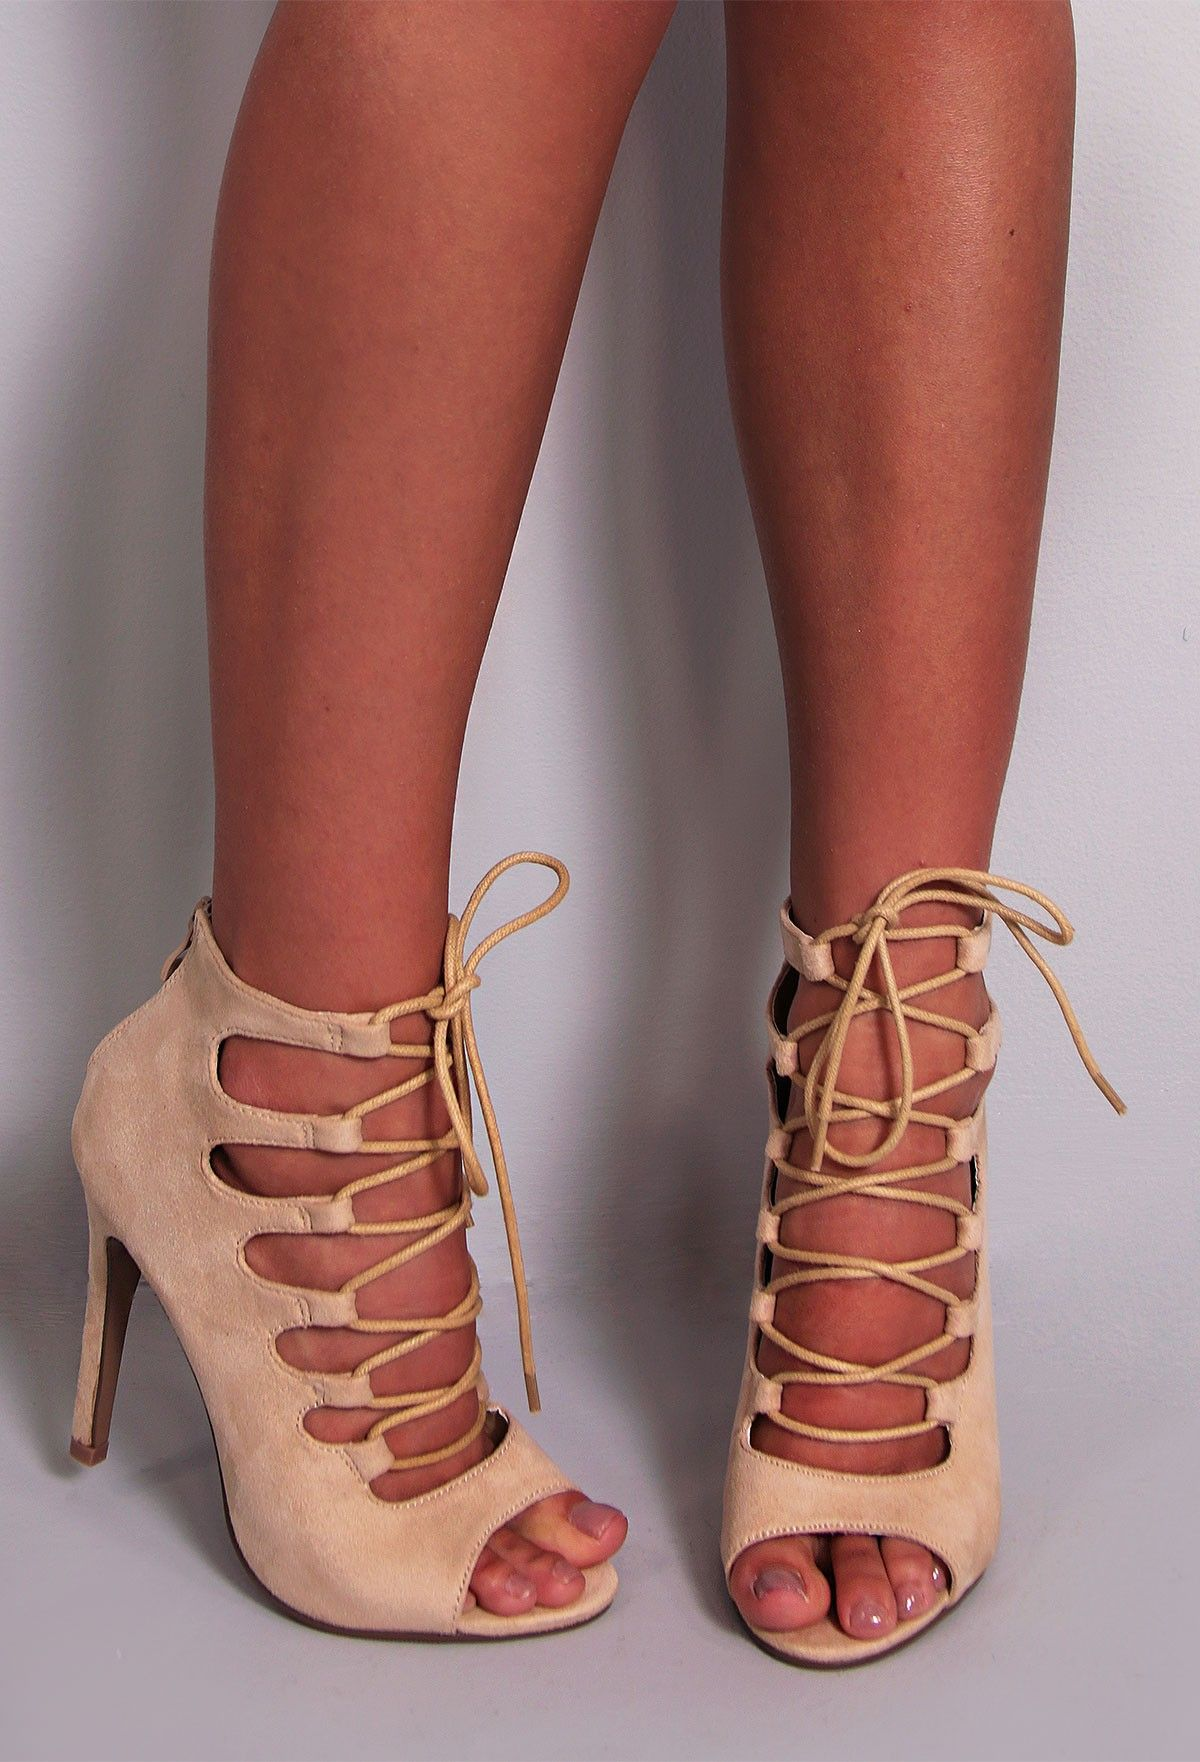 5c18f7ae53dc Kylie cream suedette lace up  heels http   www.pinkboutique.co